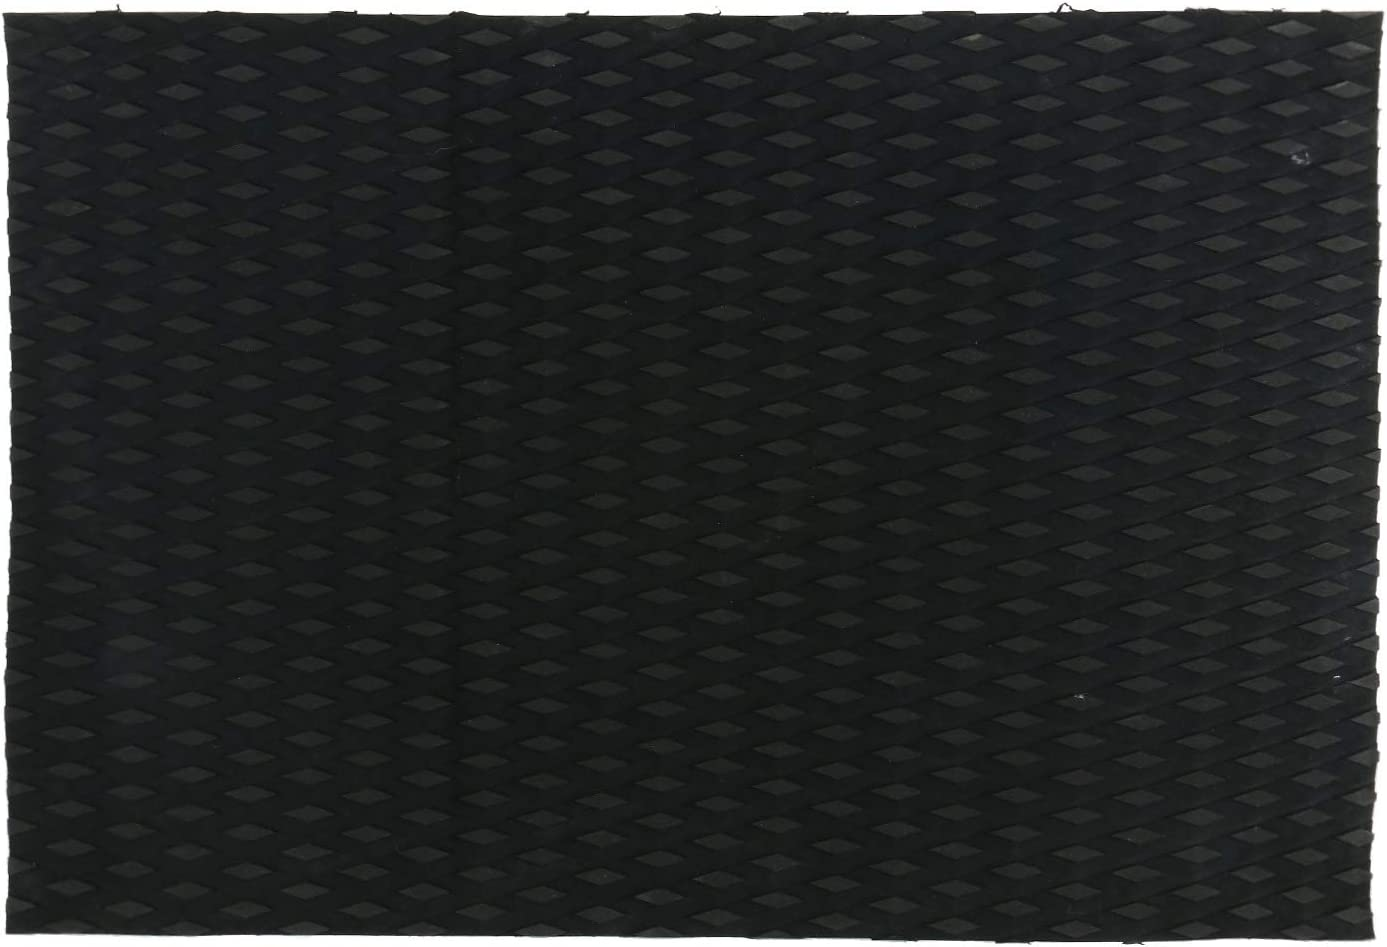 Kayaks Amarine Made 2-Pack Universal Non-Slip Traction Pad Deck Grip Mat with Trimmable EVA Sheet 3M Adhesive for Boat Decks Surfboards,Skimboards 20in x 20in,Black